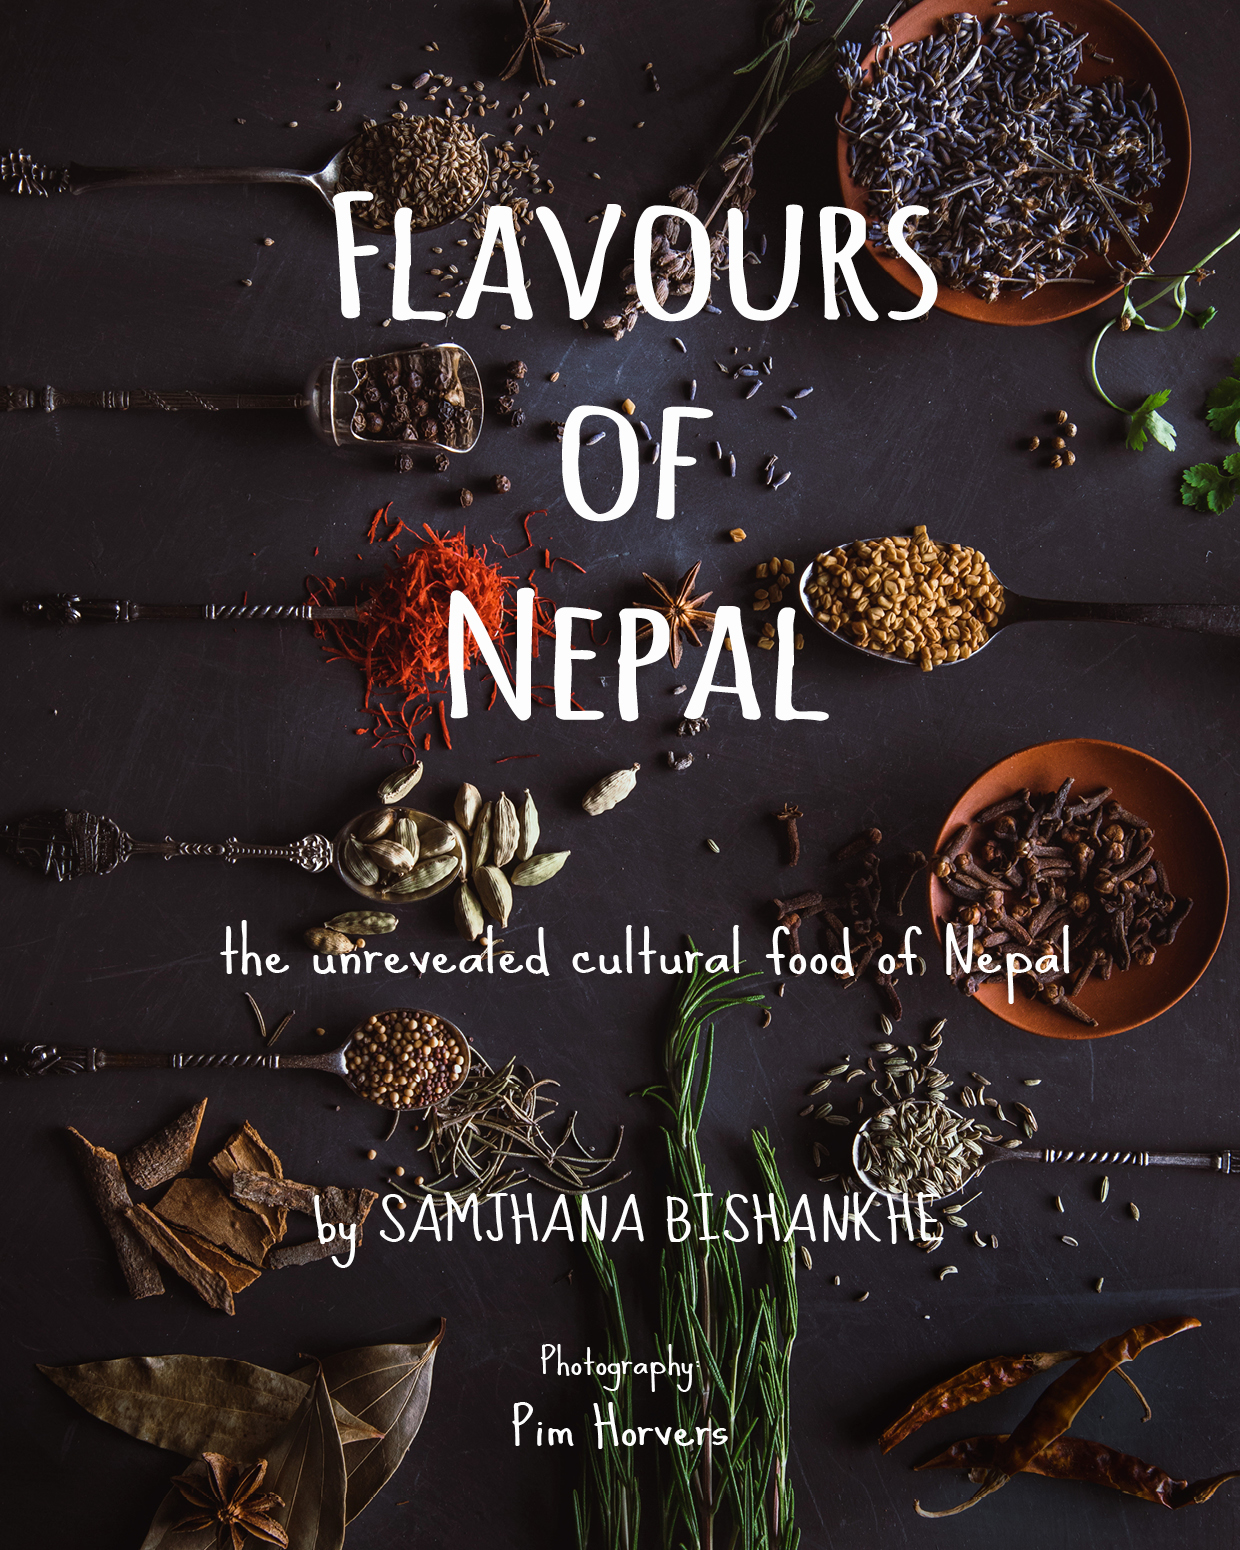 Flavours of Nepal - E-book 2018 - version 1.3.jpg